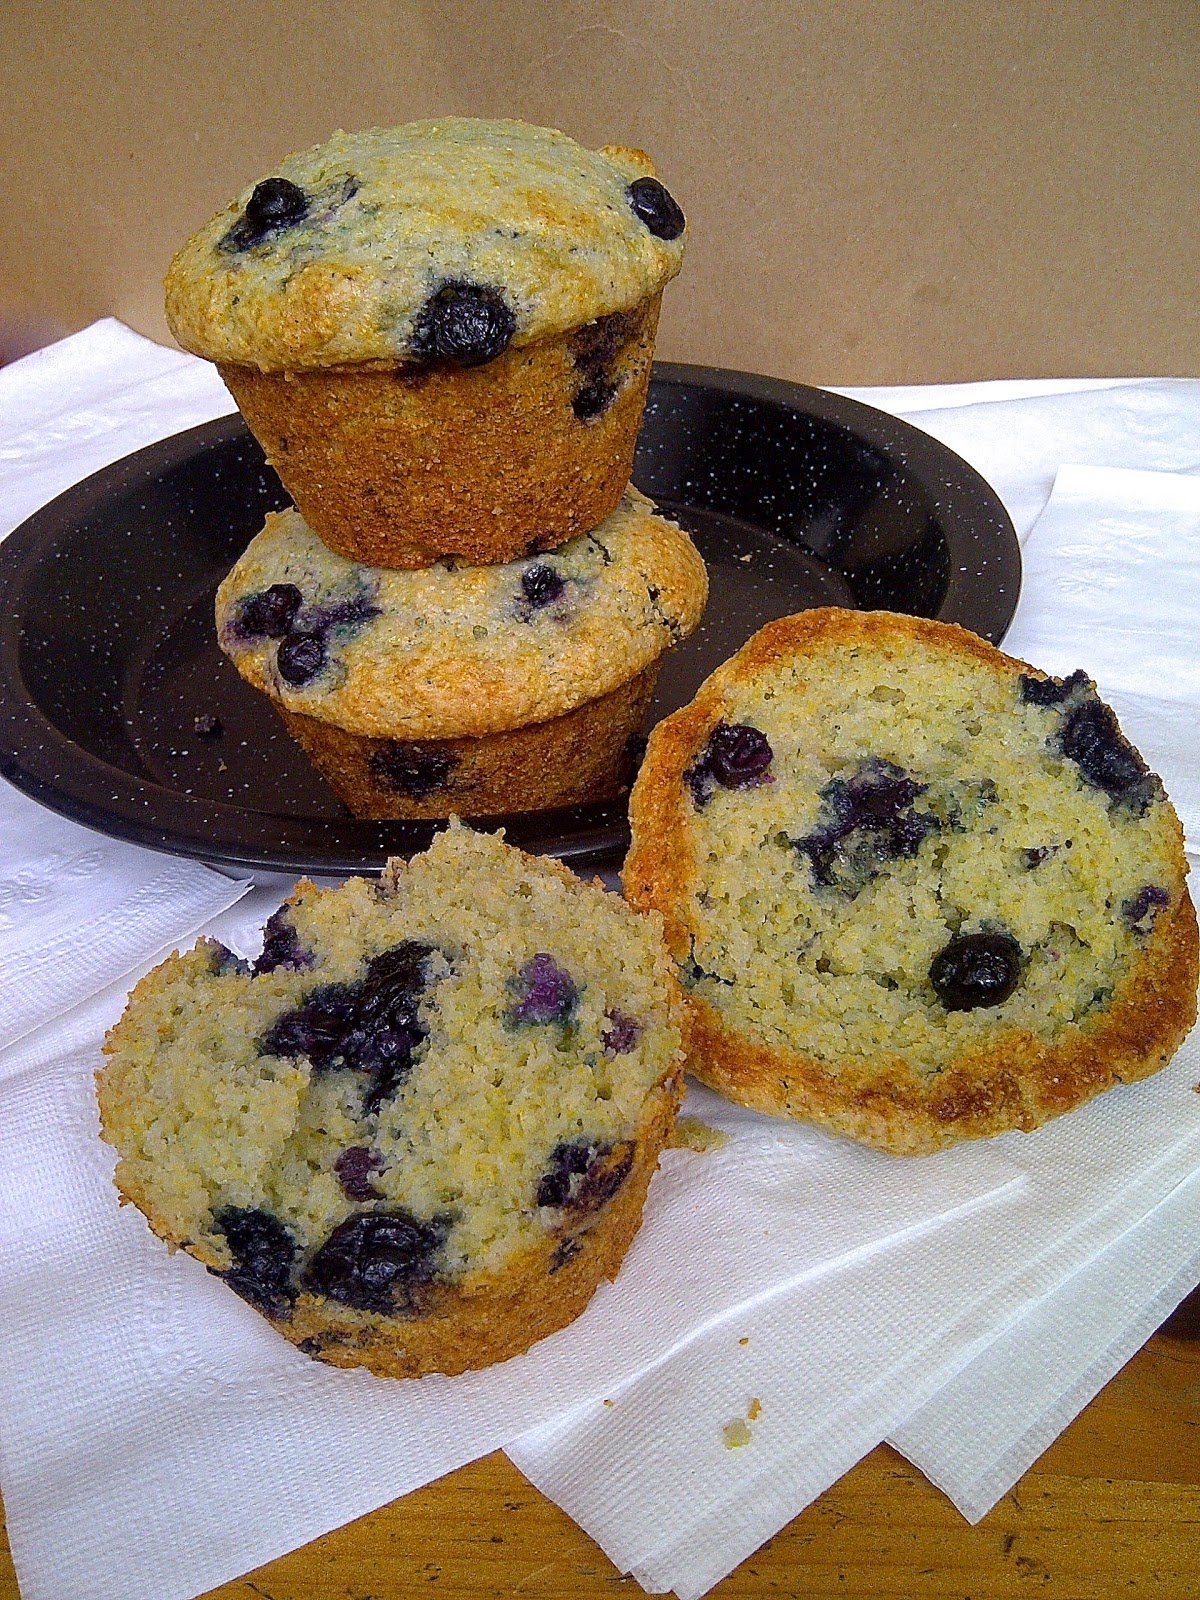 Blueberry Corn Muffins....can't decide on which to make - blueberry or corn?  Make both!  www.soliloquyoffood.com